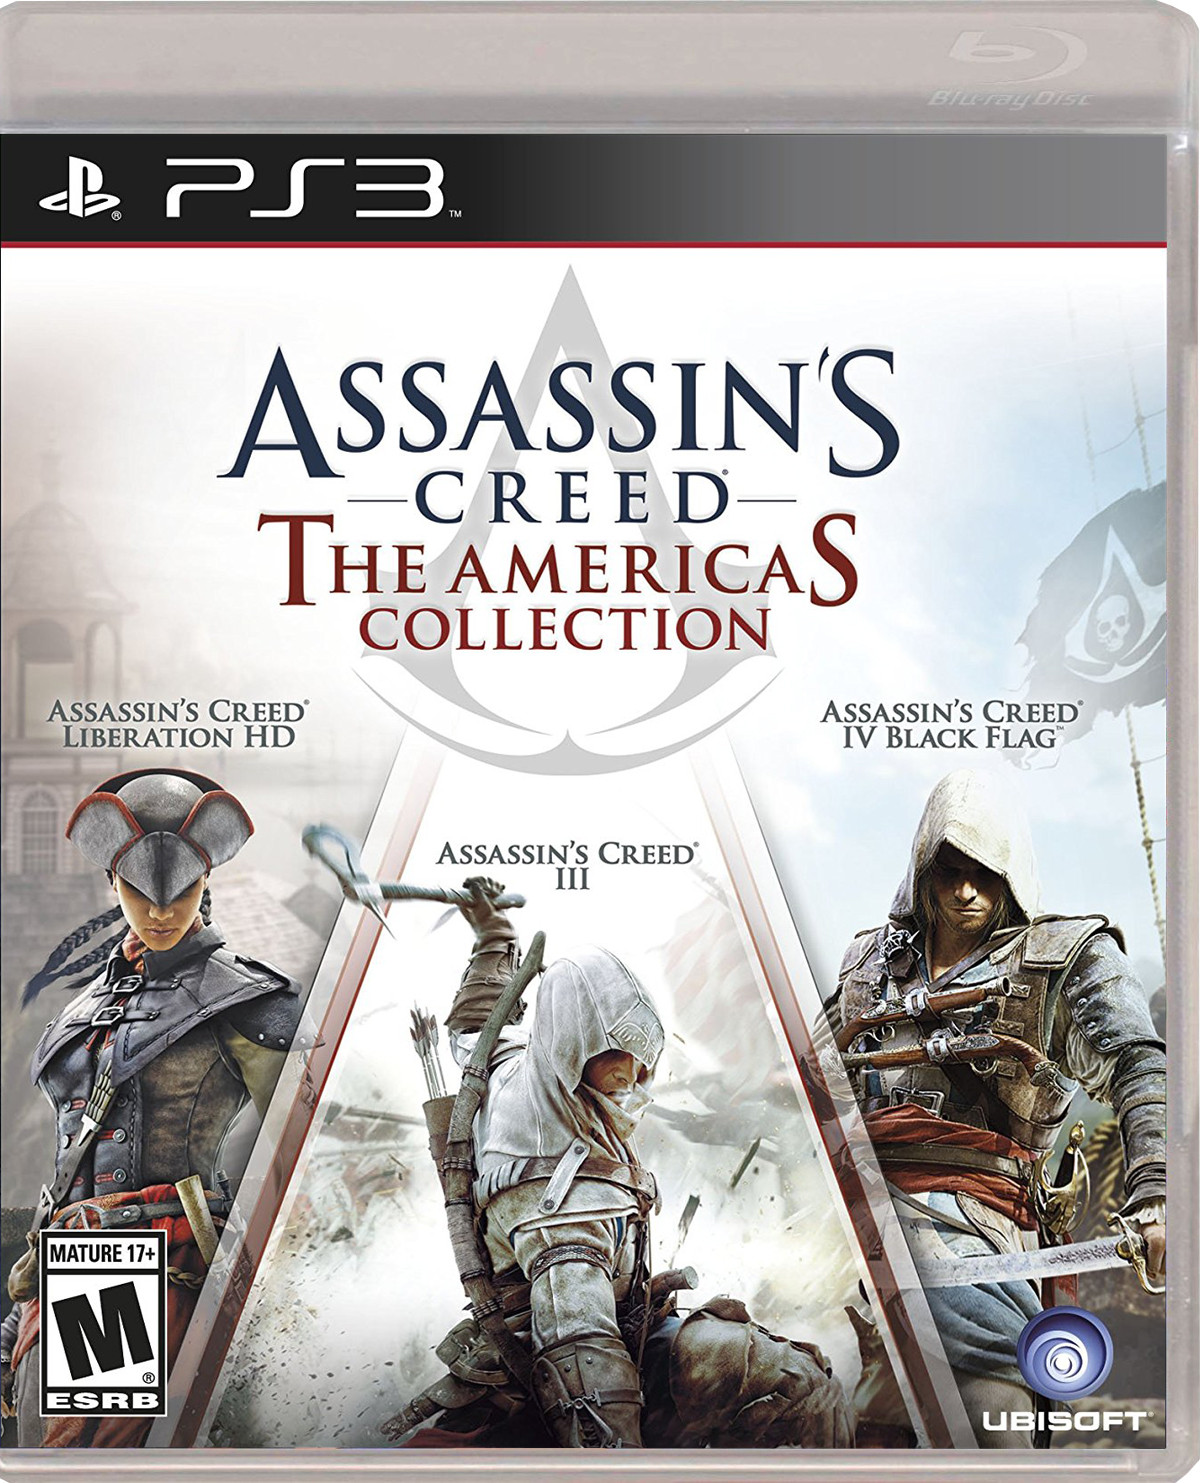 ASSASSINS CREED THE AMERICAS COLLECTION